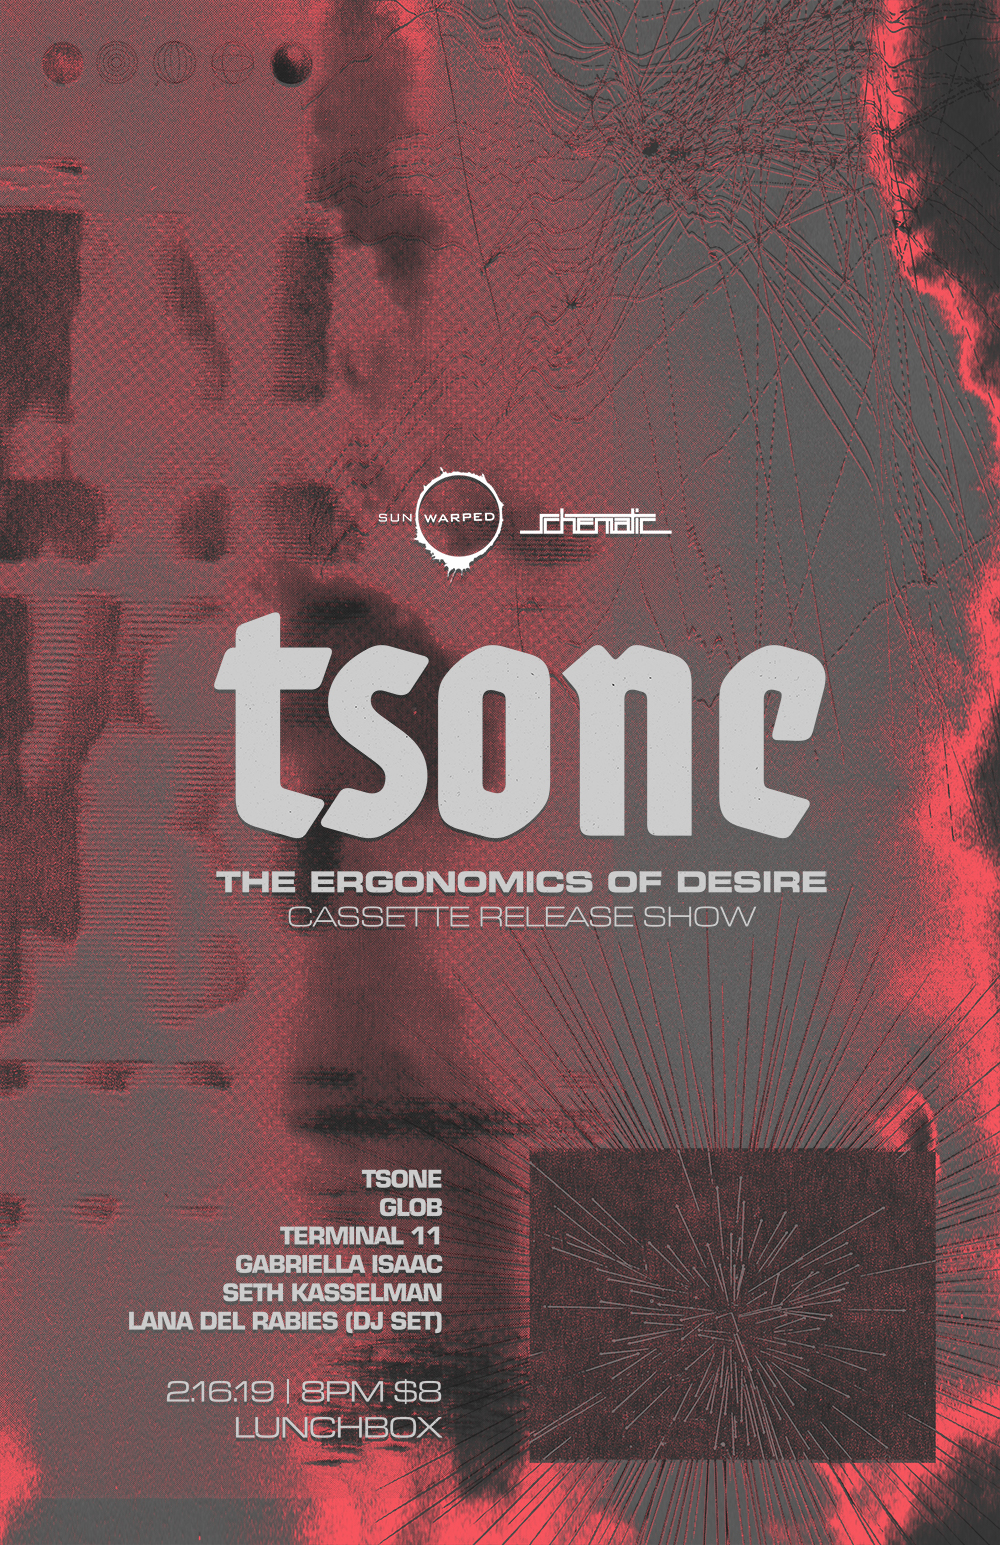 tsone The Ergonomics of Desire - Poster